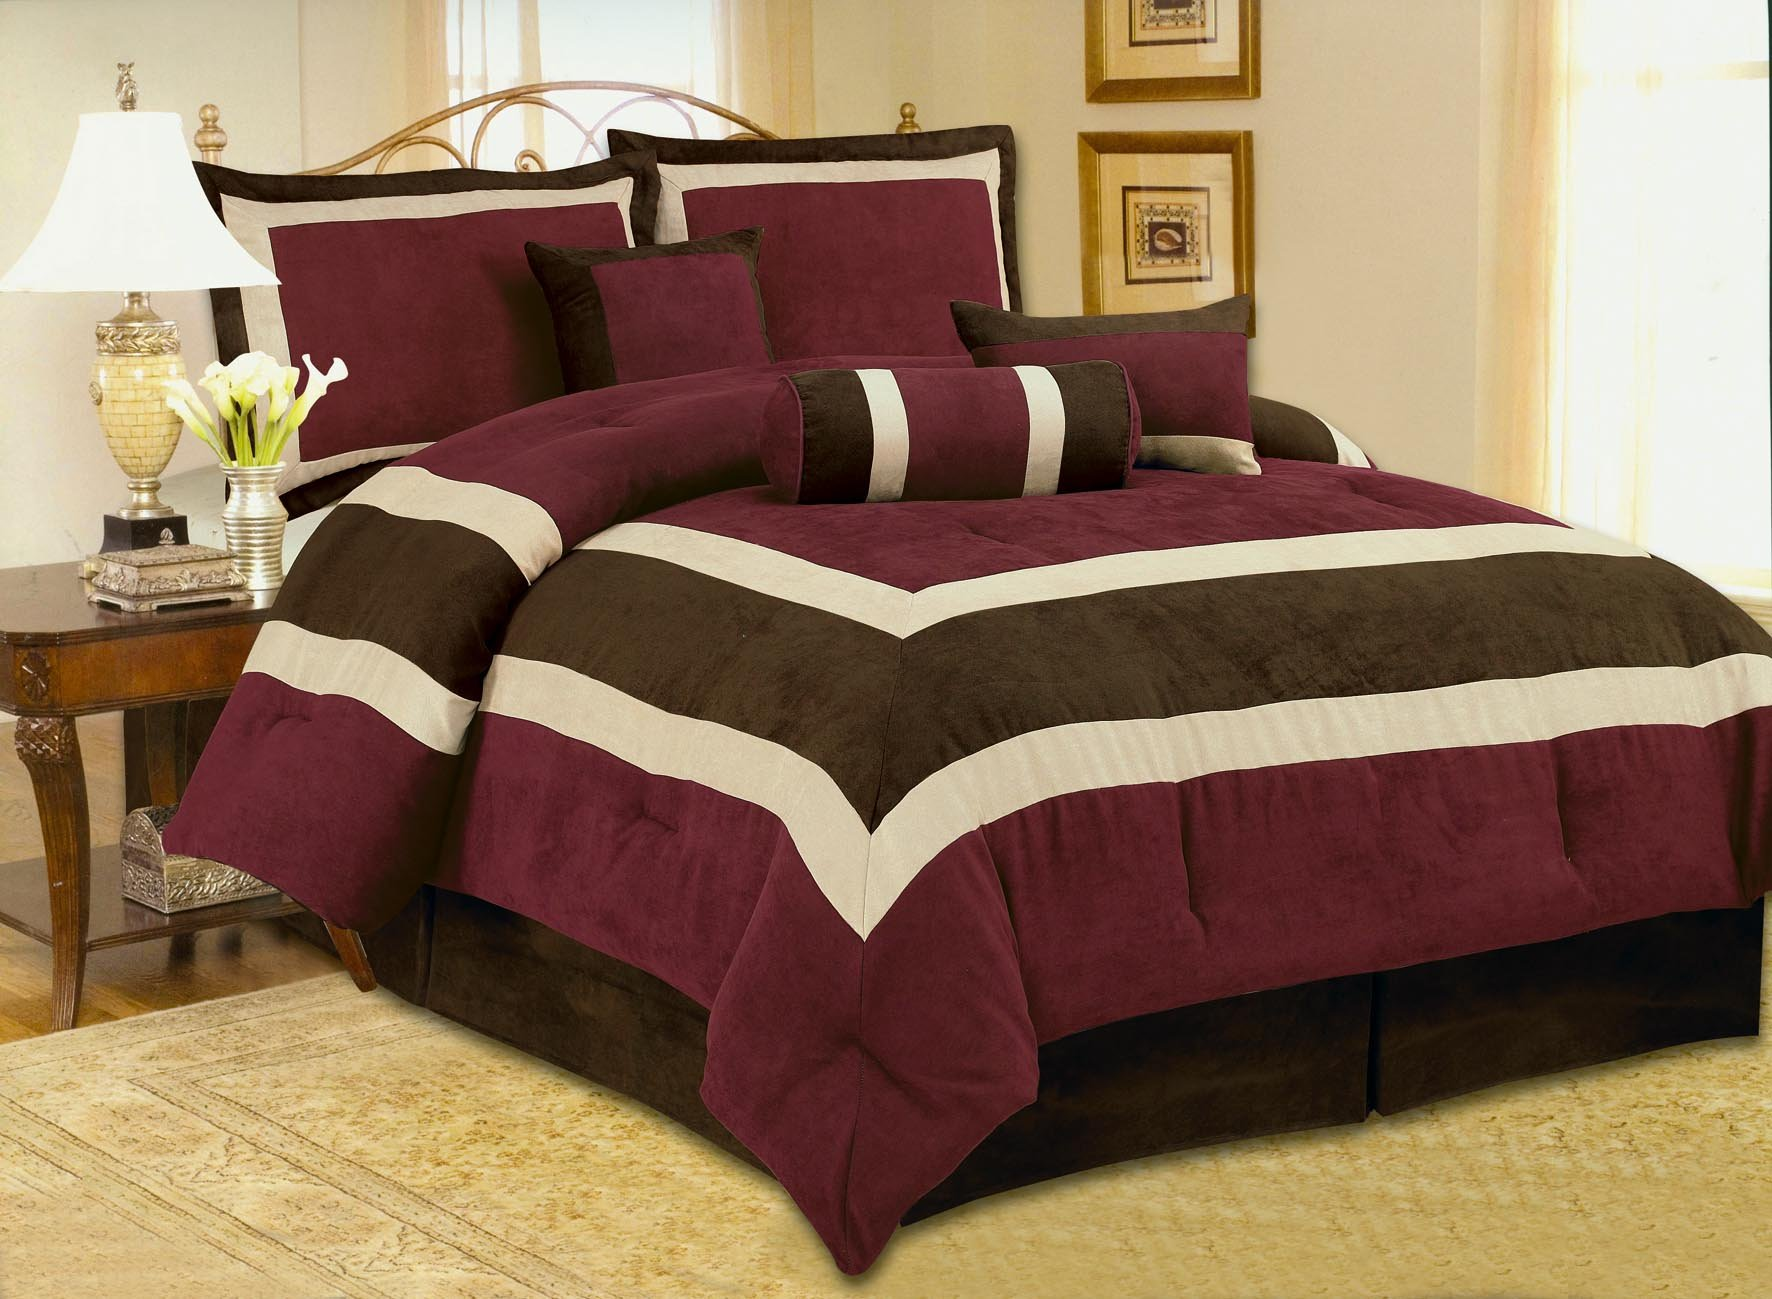 High Quality Soft Micro Suede Comforter Set Bedding-in-a-bag, Burgundy - Queen